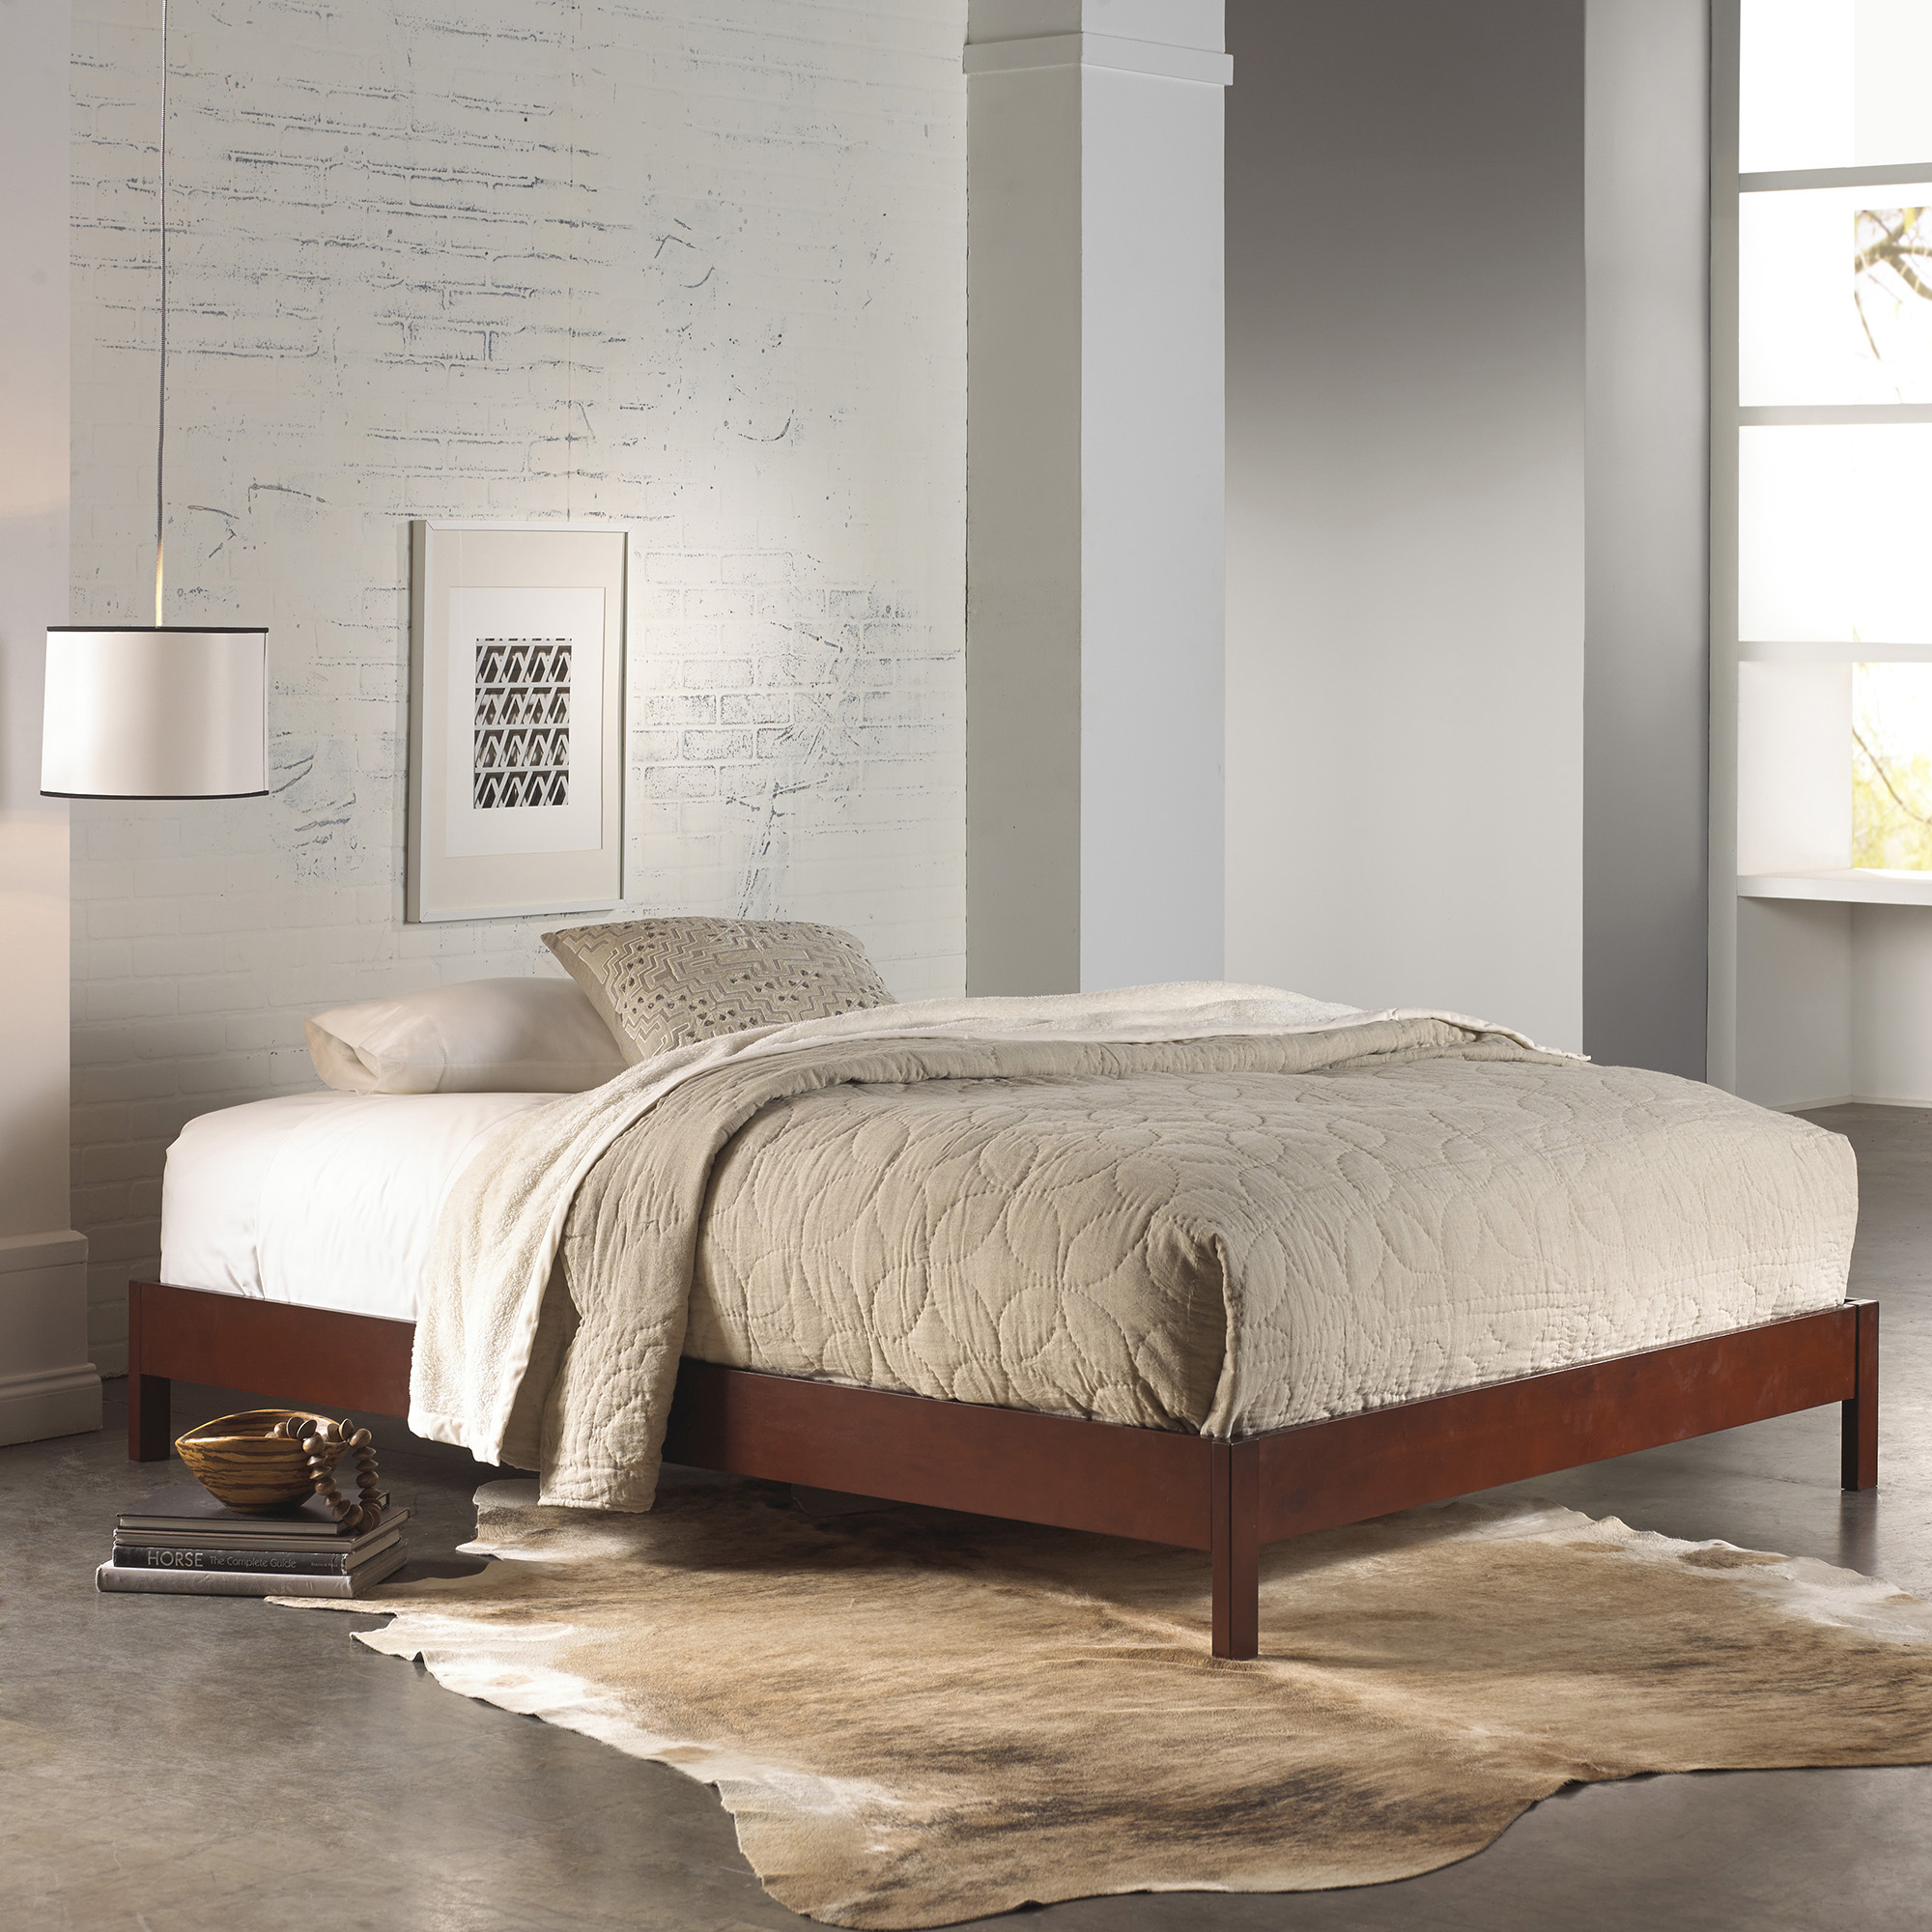 Fashion Bed Group Murray Complete Platform Bed, Multiple Sizes and Finishes by Fashion Bed Group